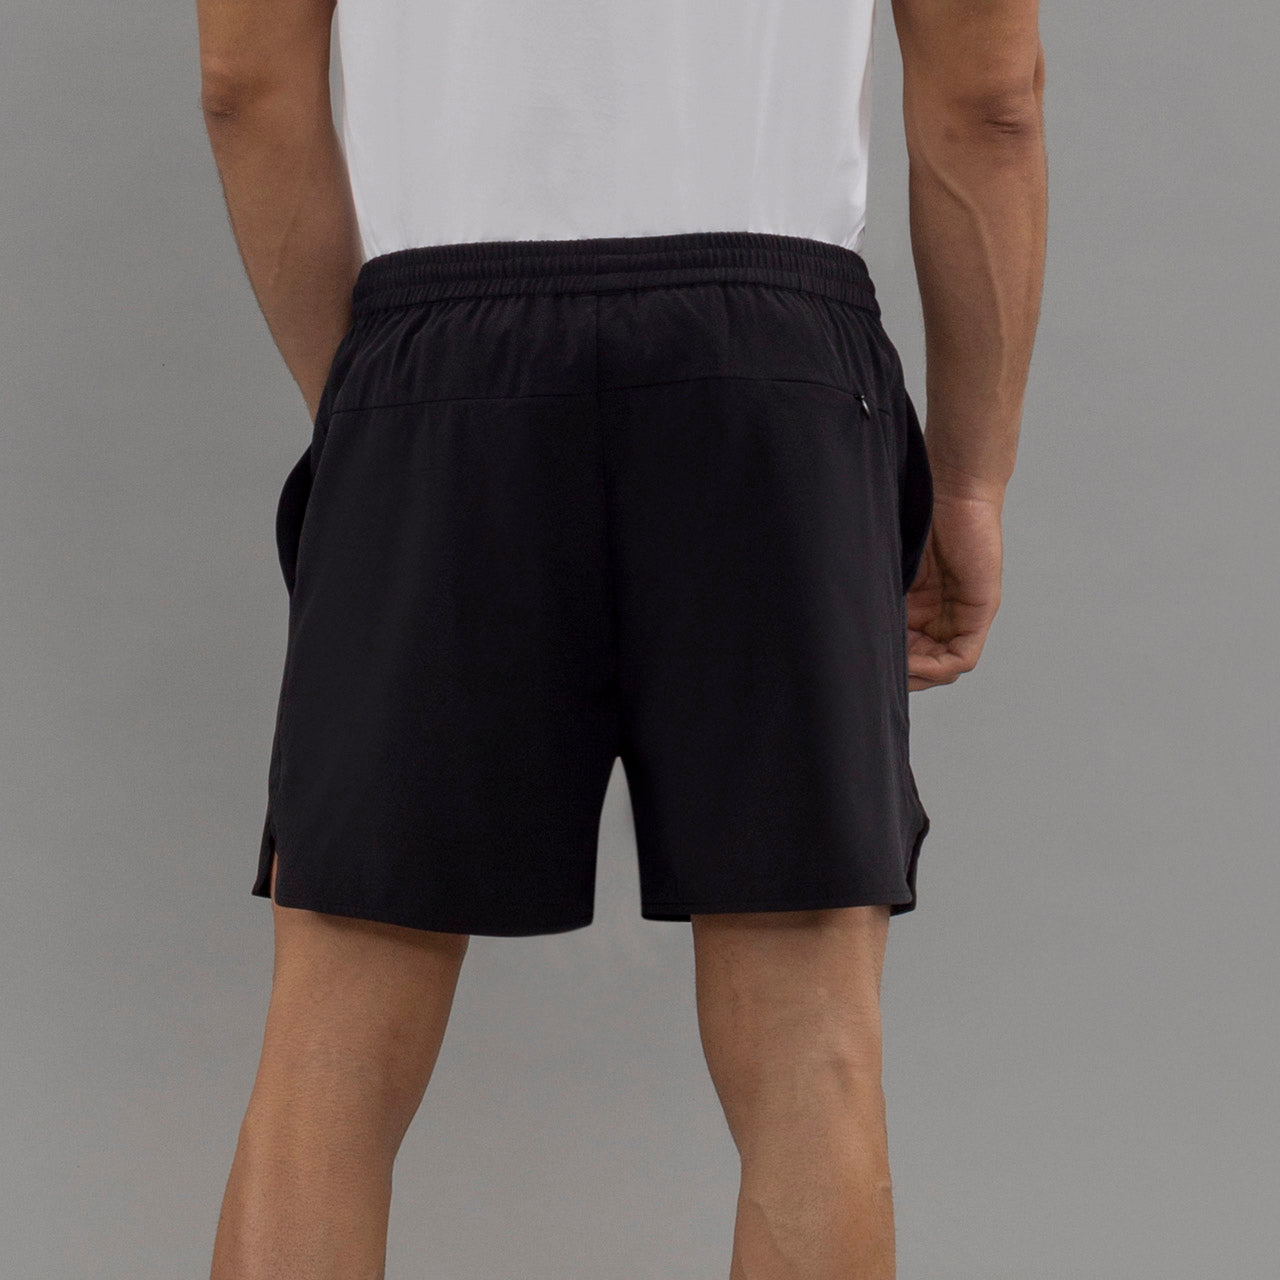 Sydney Kings Mens Running Shorts